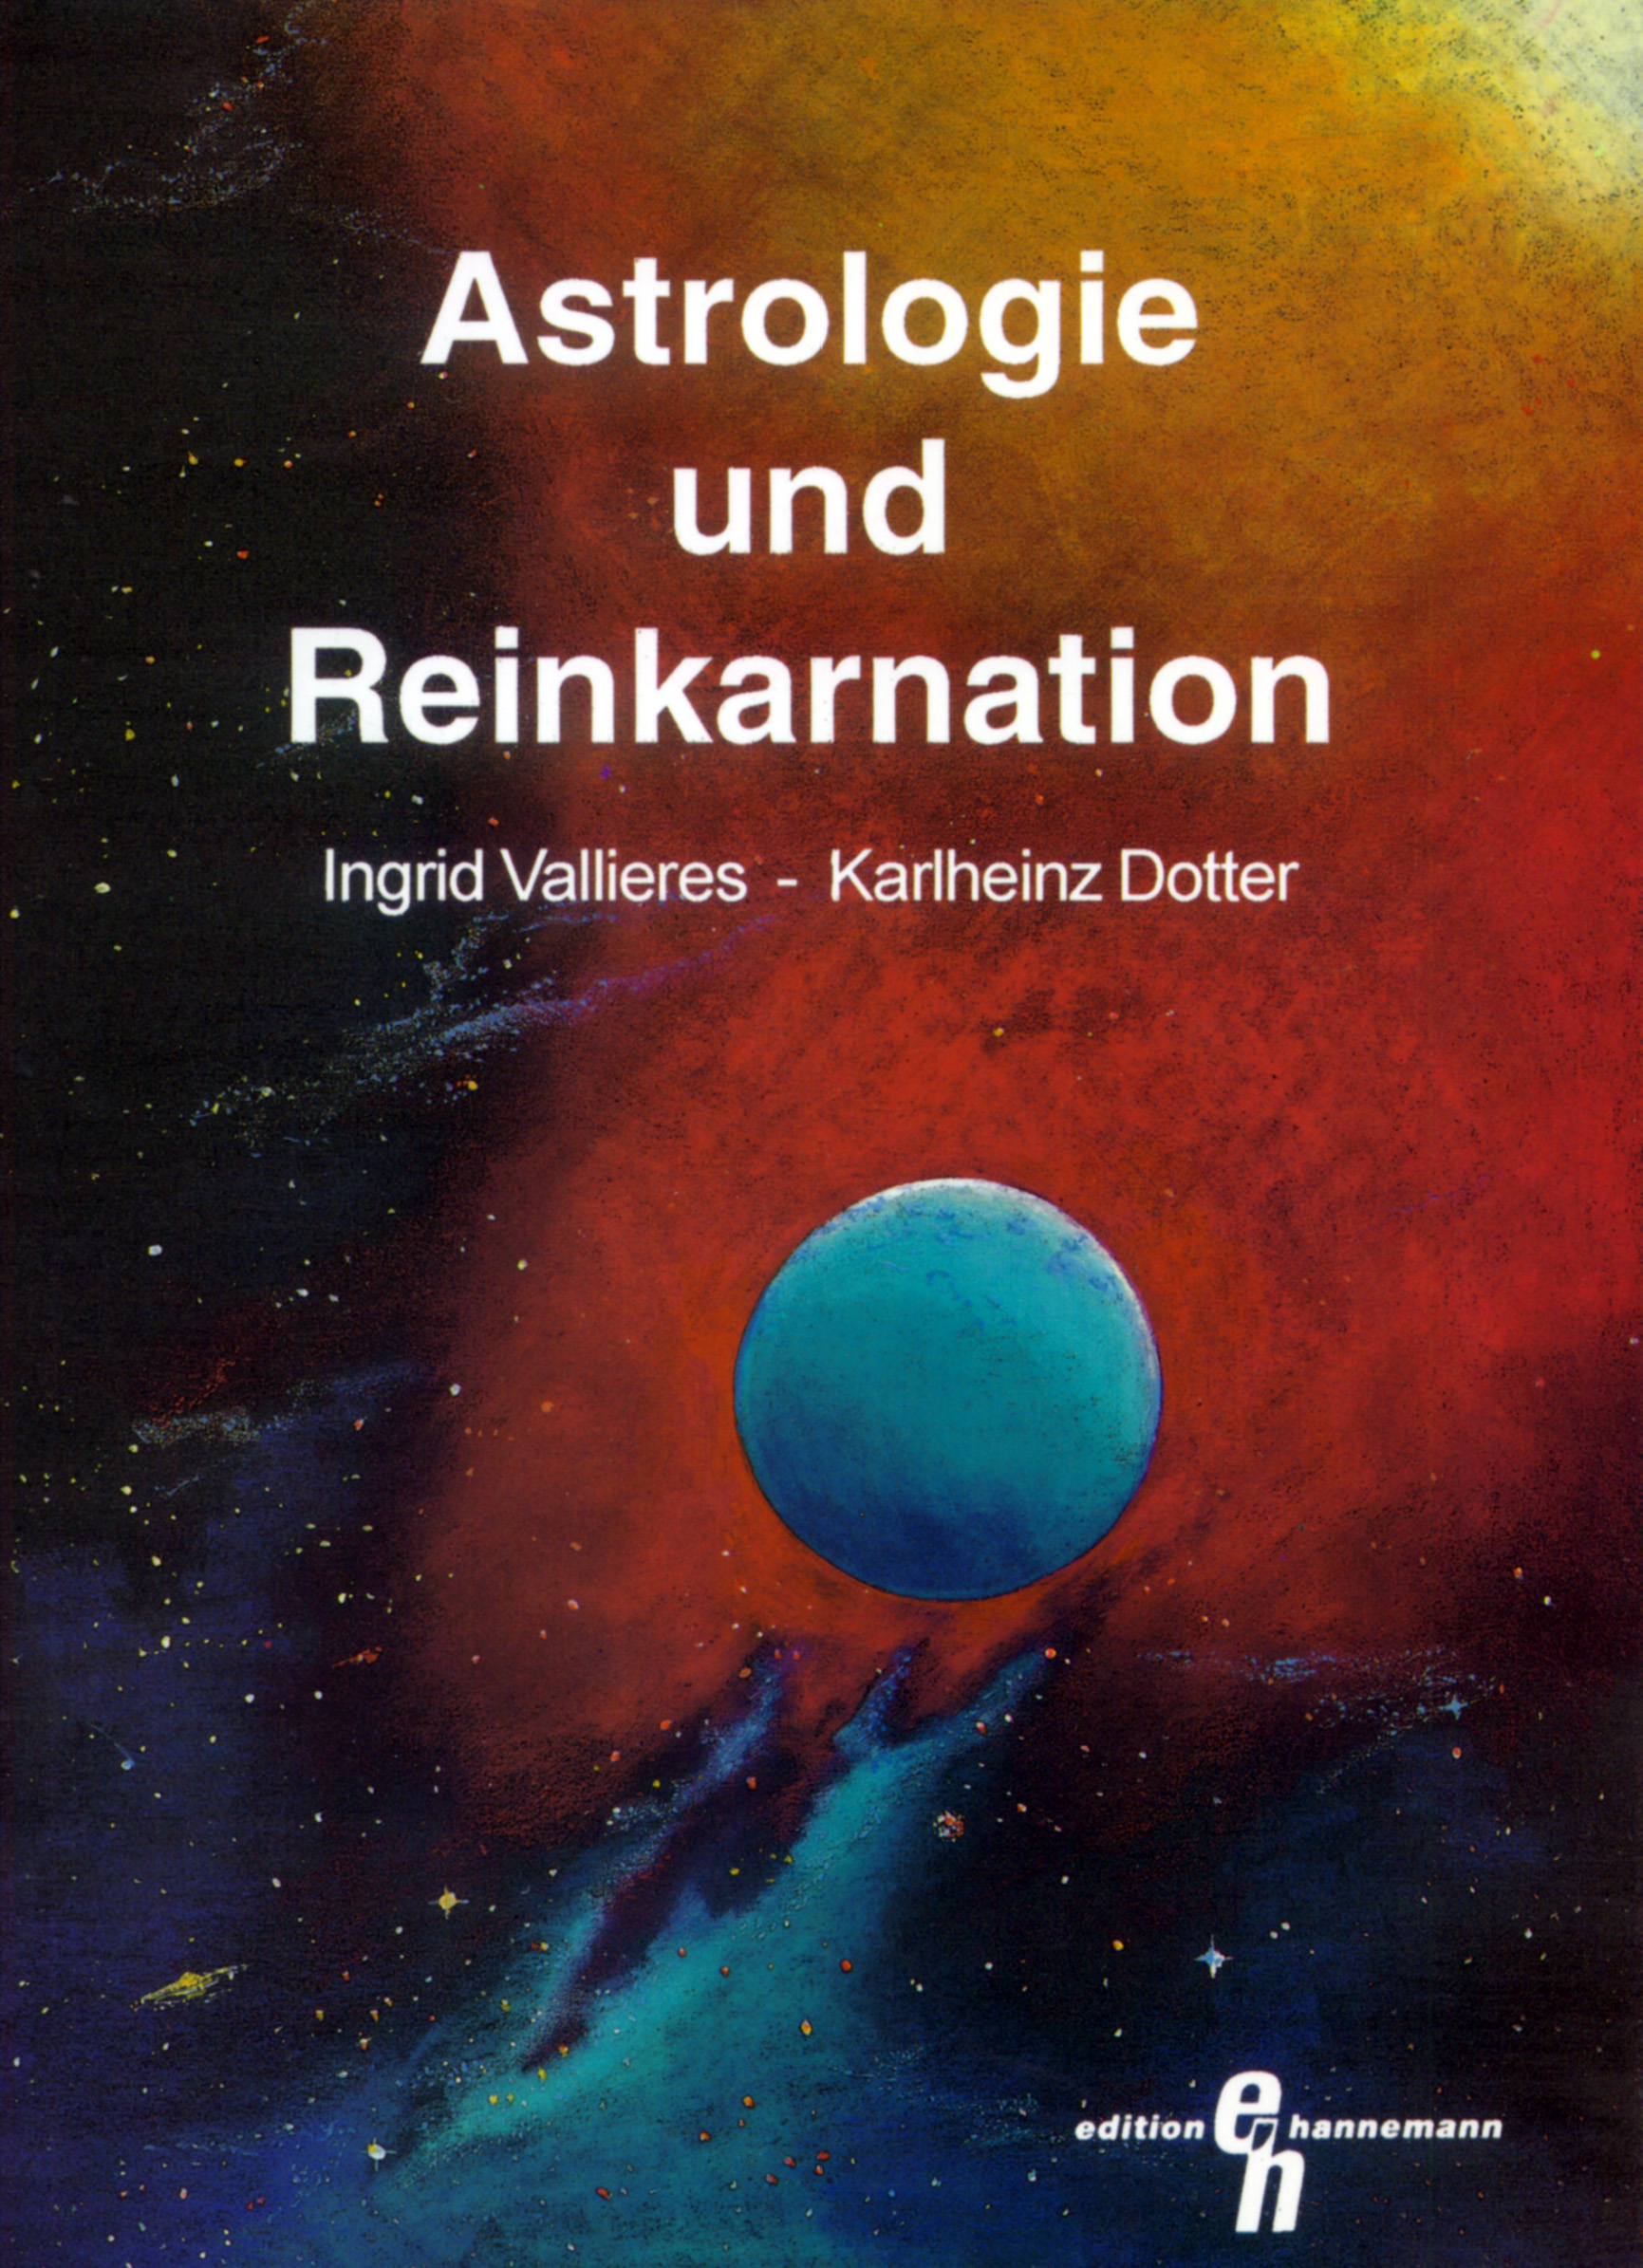 Astrologie & Reinkarnation